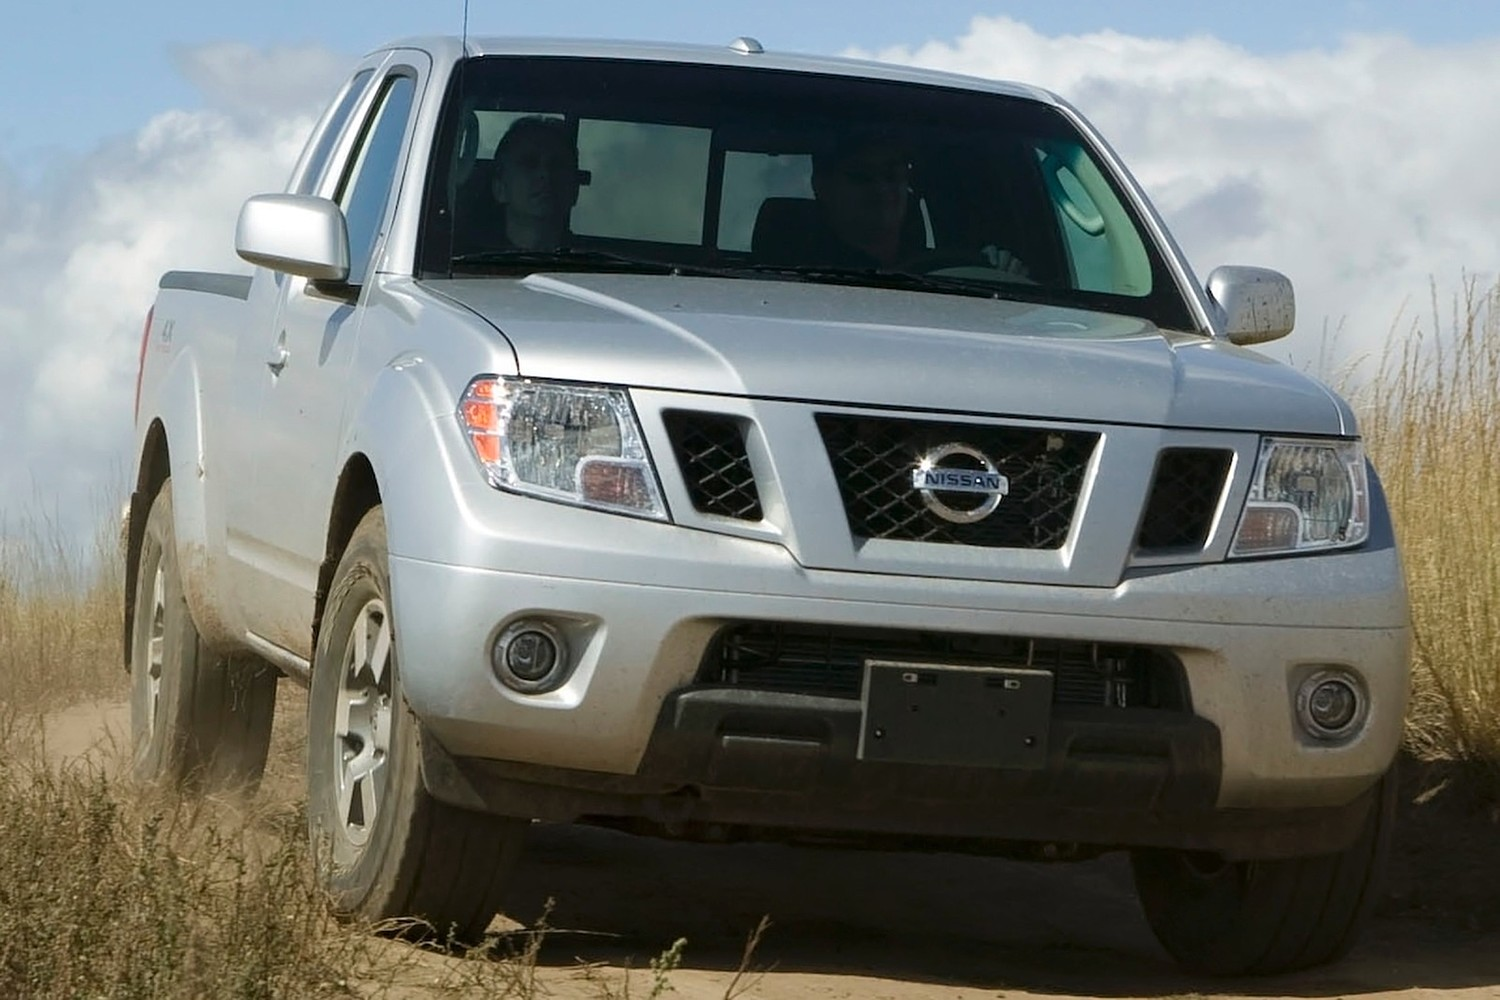 Nissan Frontier PRO-4X Extended Cab Pickup Exterior (2013 model year shown)